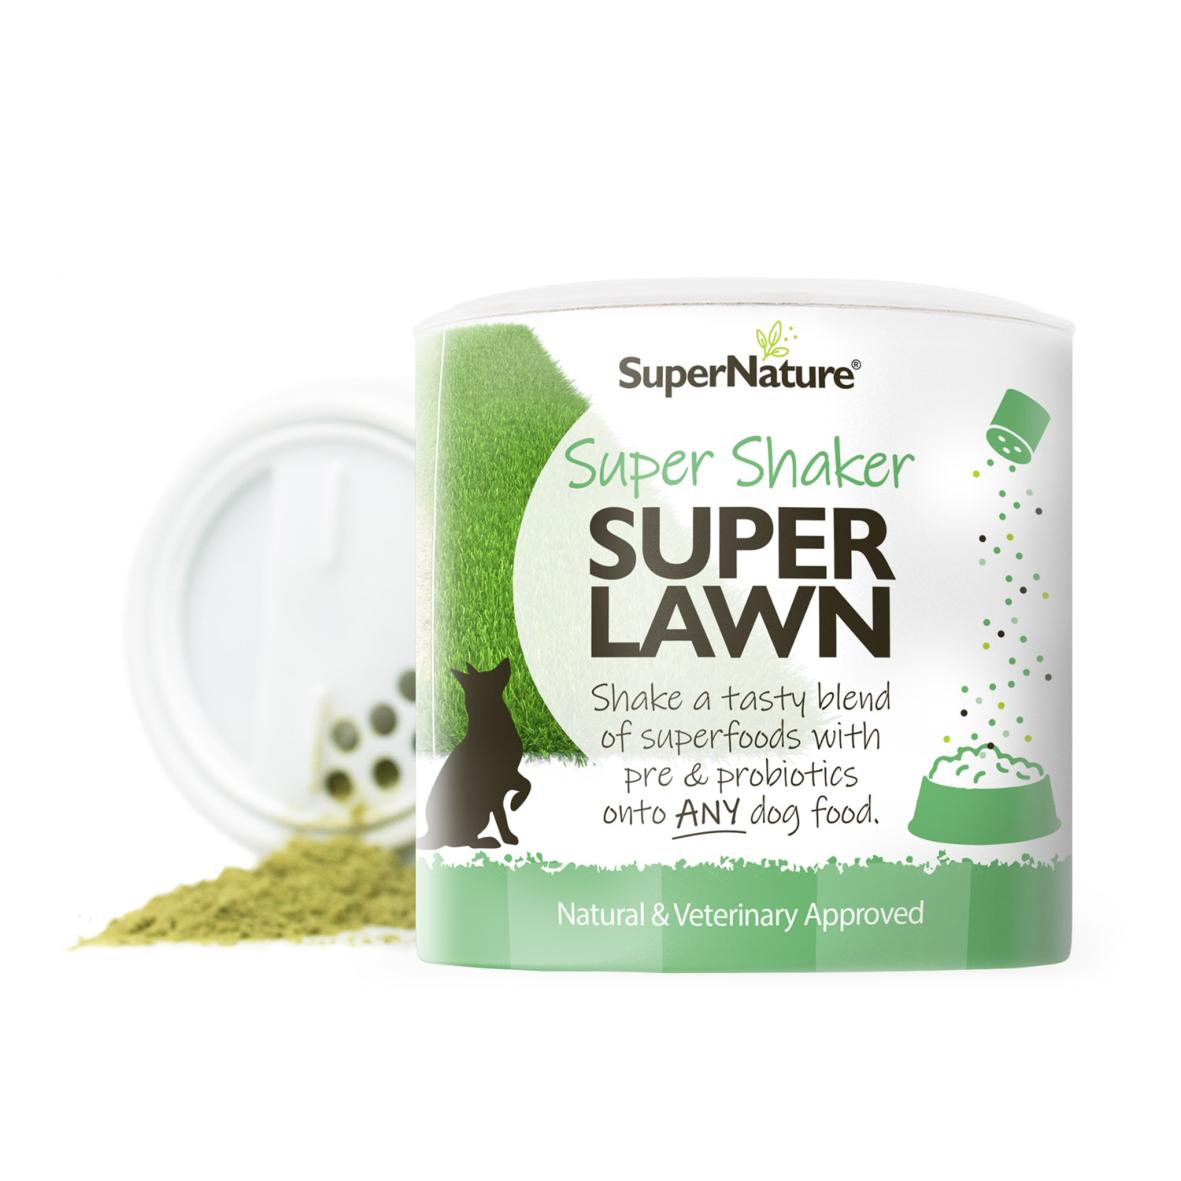 SuperNature Super Lawn Super Shaker 60gm